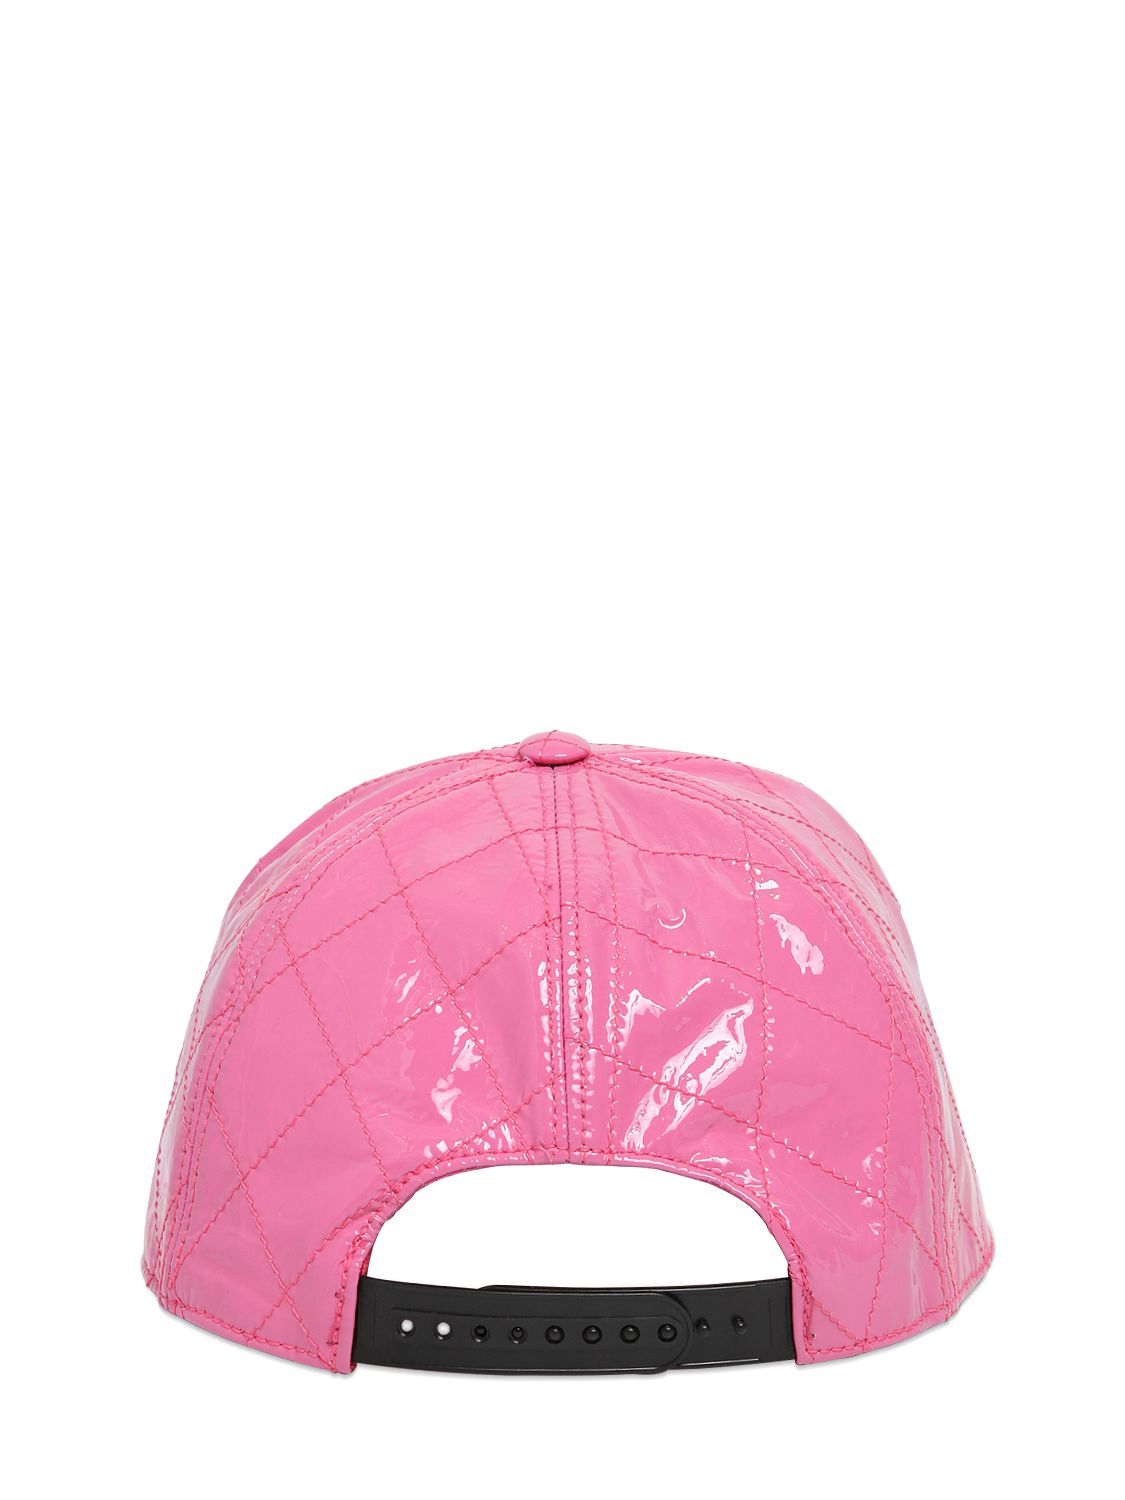 Lyst - Moschino Quilted Patent Leather Baseball Cap in Pink 8f4df5417cf